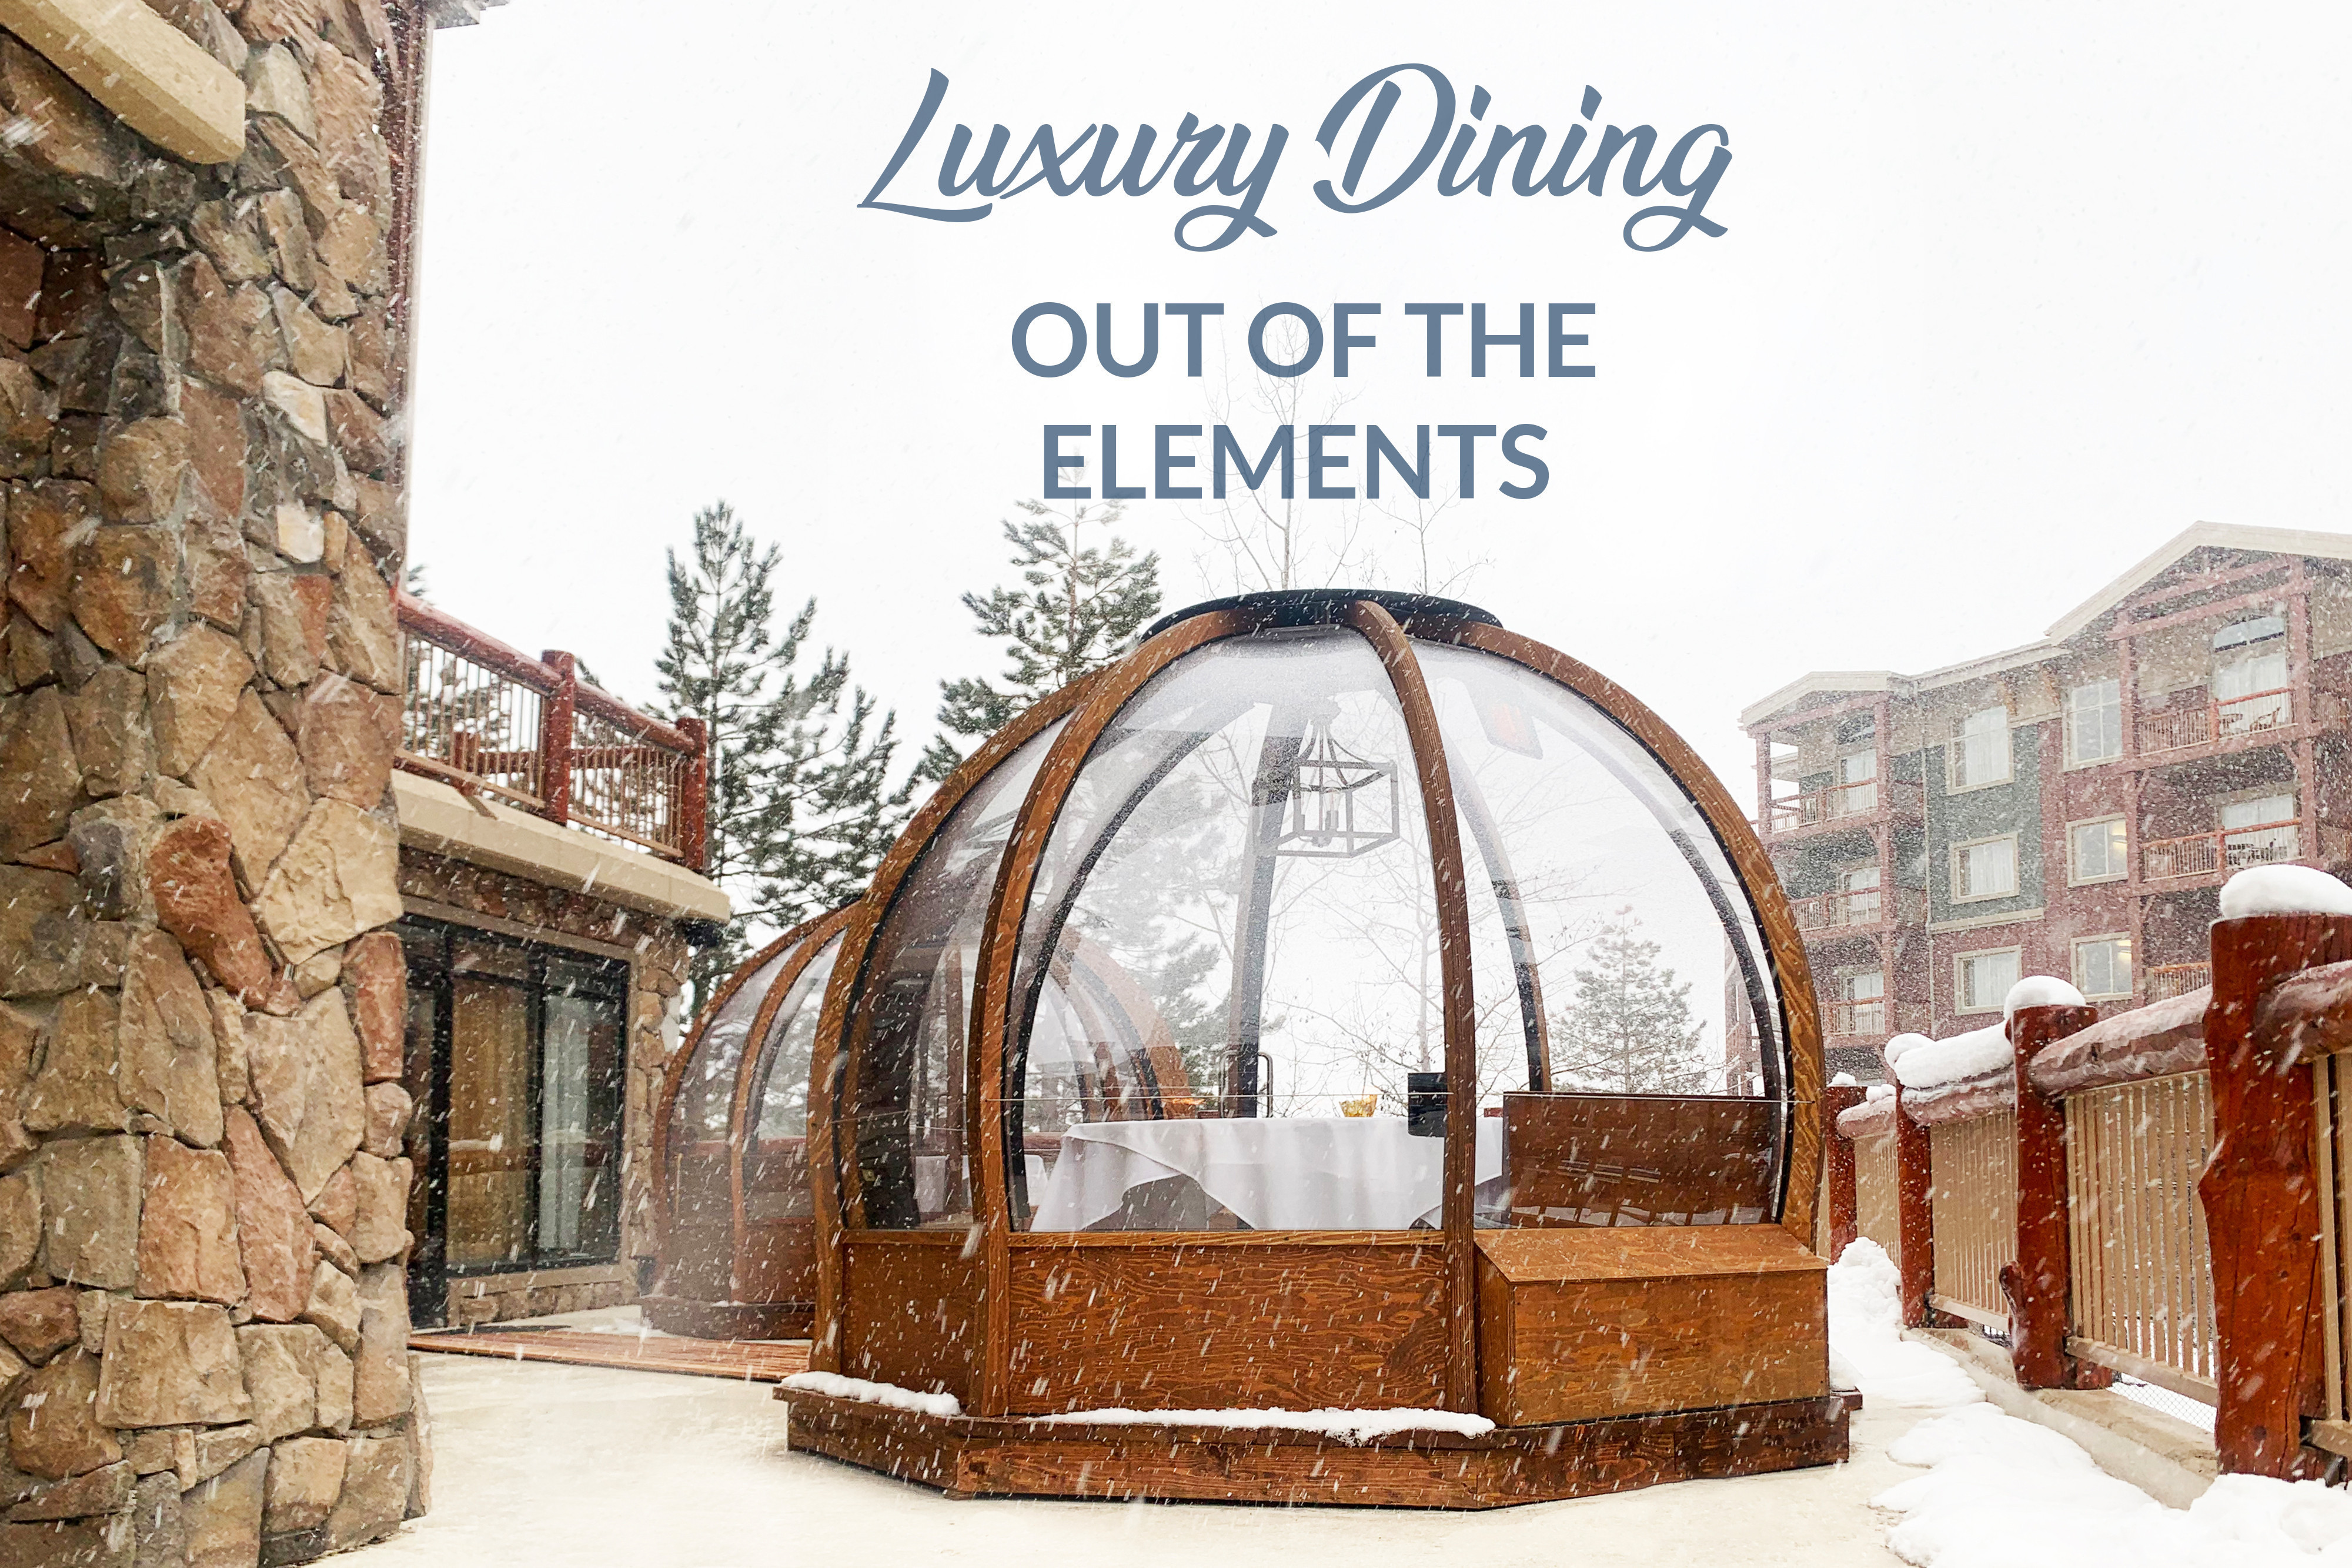 Luxury Alpenglobe Dining Experience Now Available at Westgate Park City Resort & Spa - Park City